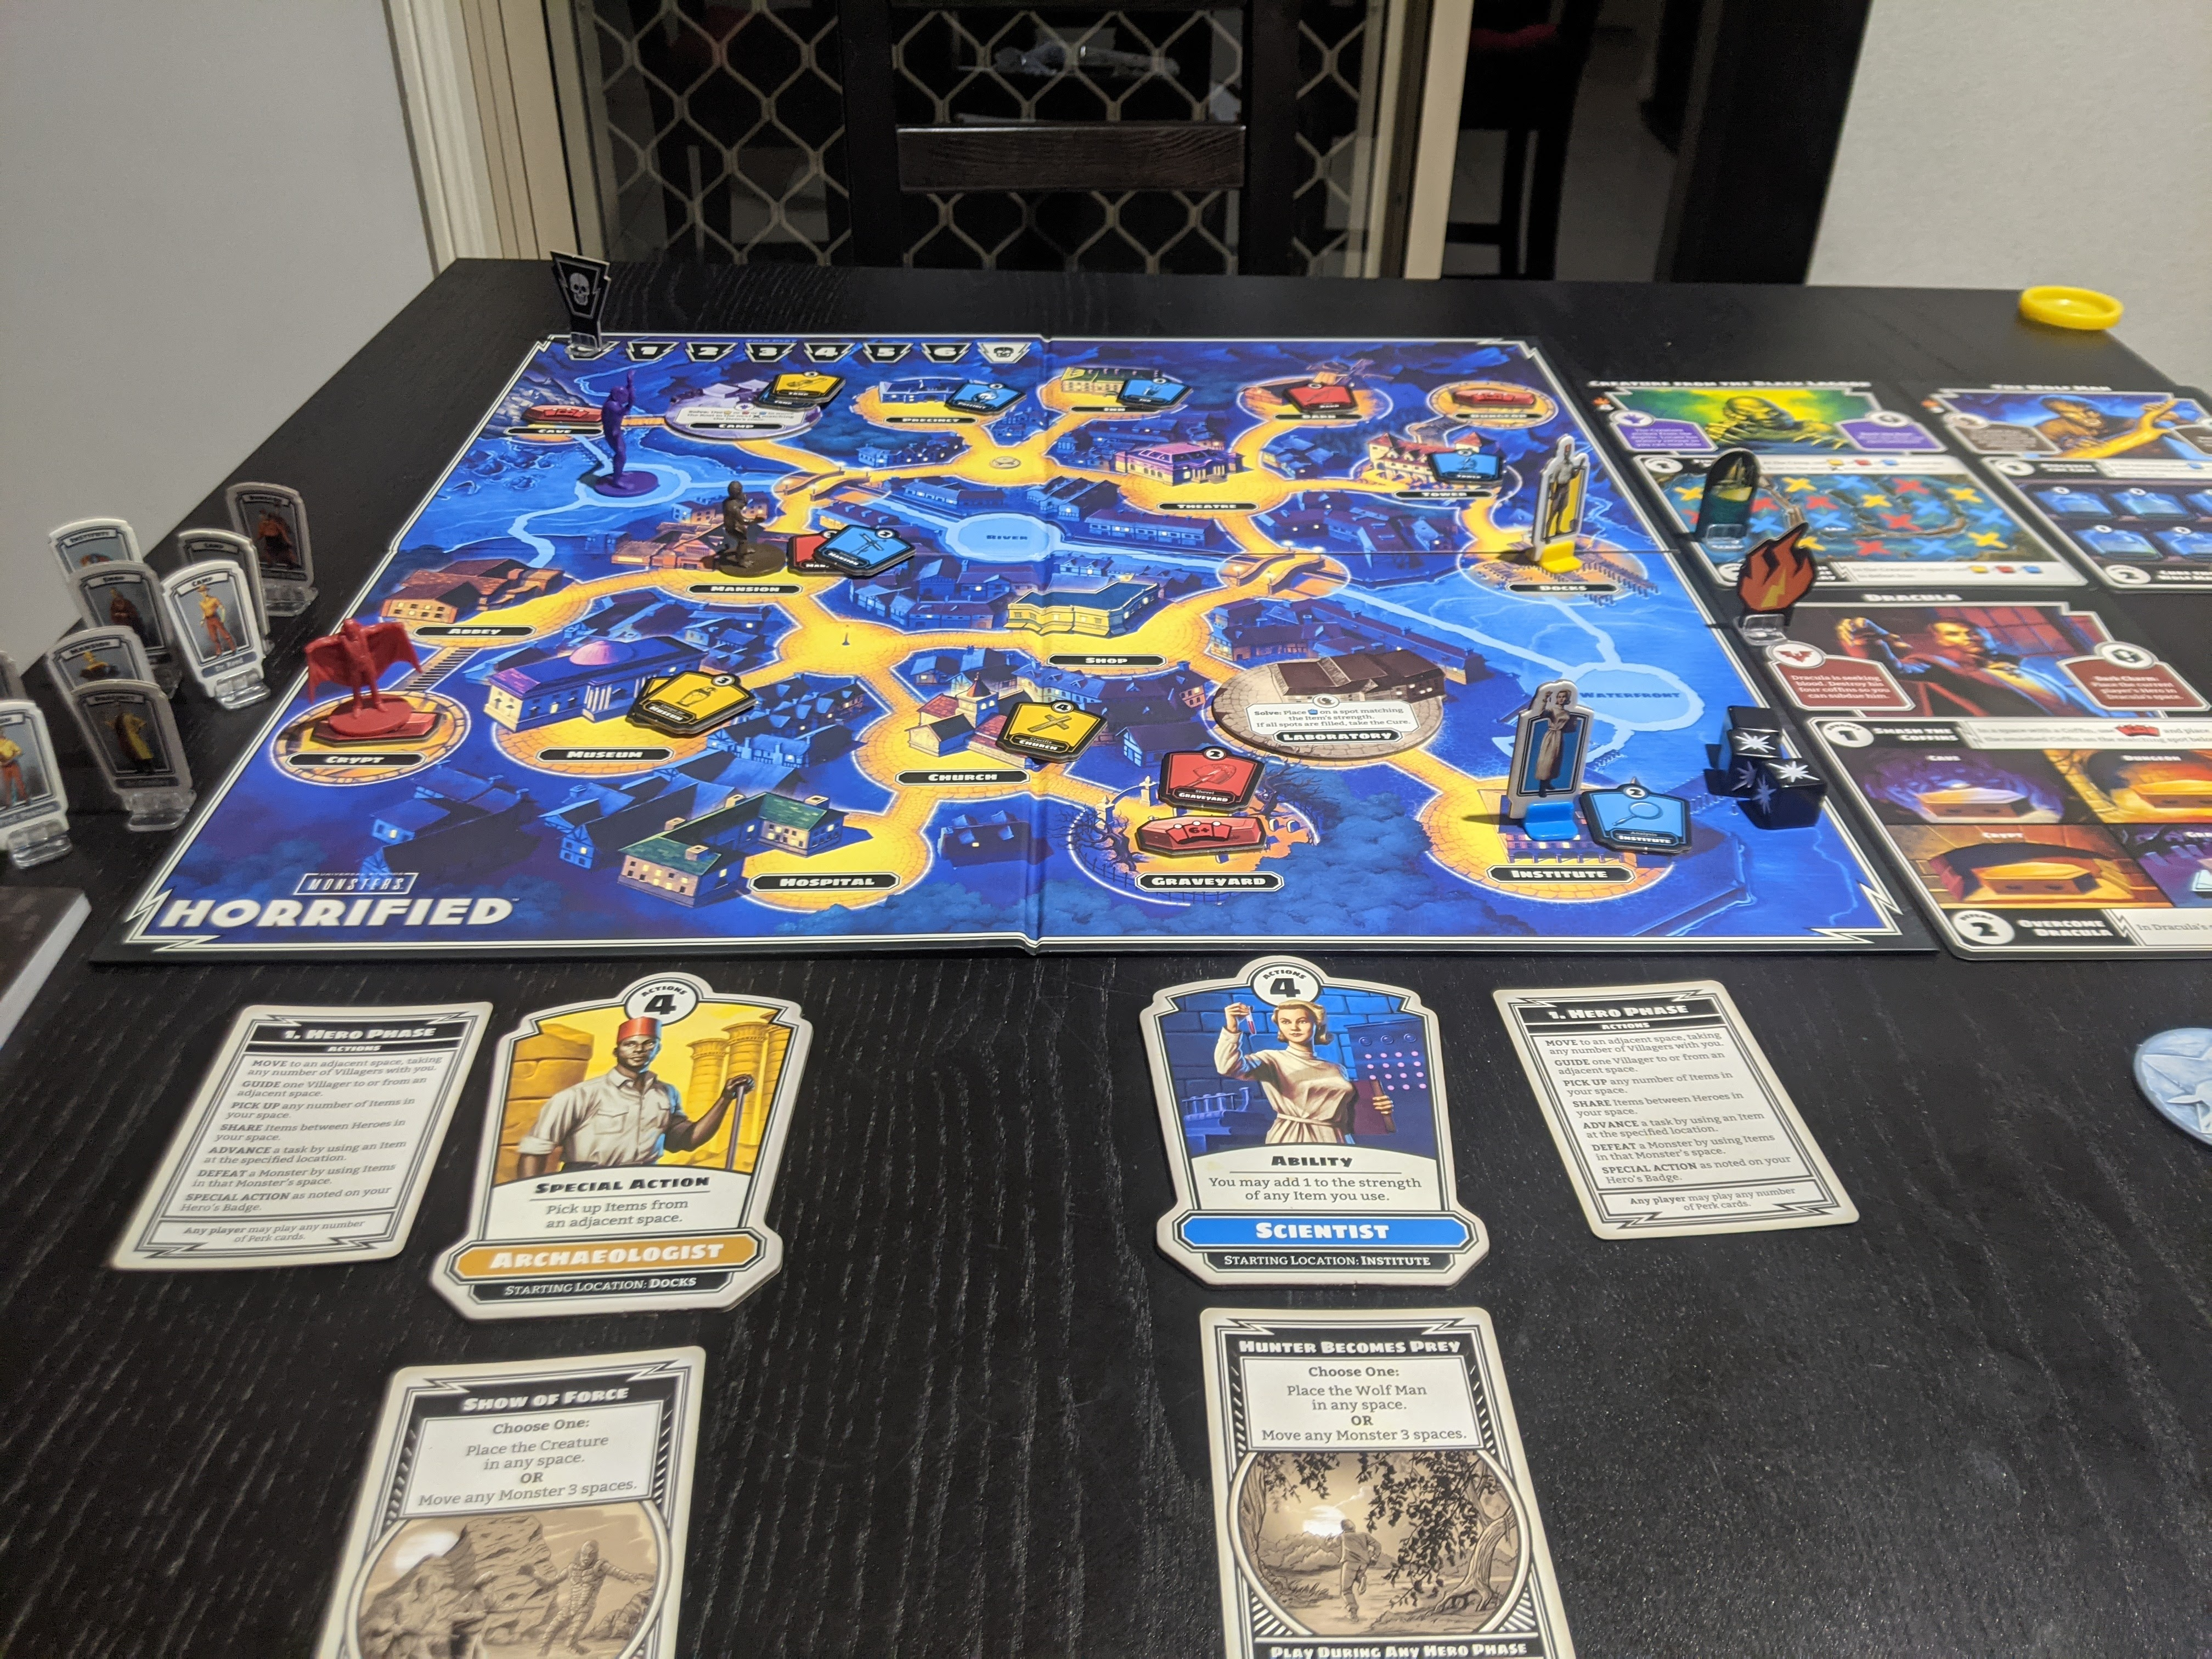 Horrified in the middle of play, The Wolfman, Dracula, and The Creature of the Black Lagoon stalk the town for victims.